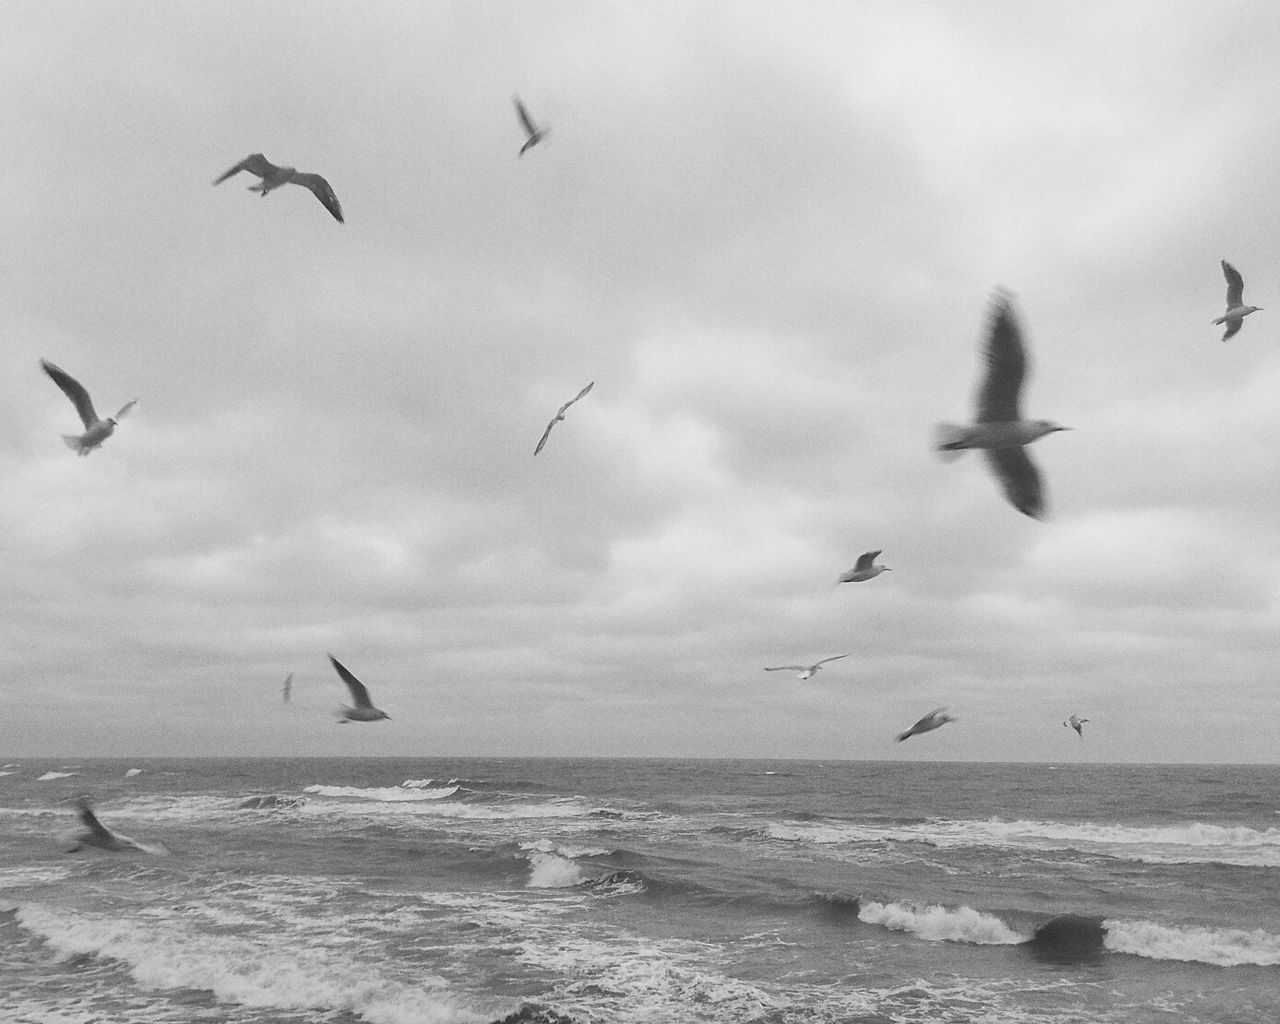 flying, bird, animals in the wild, animal themes, sea, sky, large group of animals, nature, flock of birds, mid-air, water, motion, animal wildlife, spread wings, cloud - sky, beauty in nature, tranquility, day, no people, outdoors, horizon over water, seagull, scenics, wave